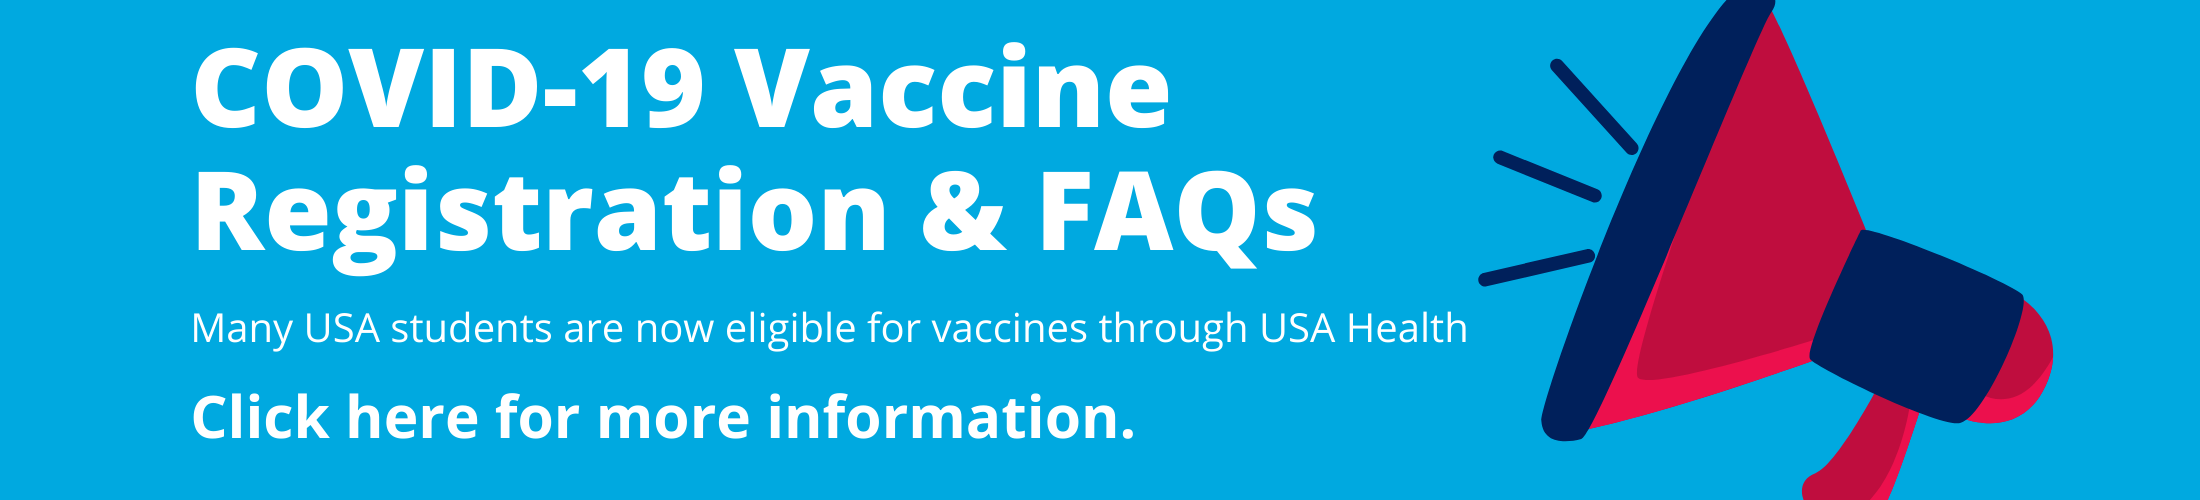 Covid-19 Vaccine Registration and FAQ - Many UsA students are not eligible for vaccines through USA Health.  Click for info.